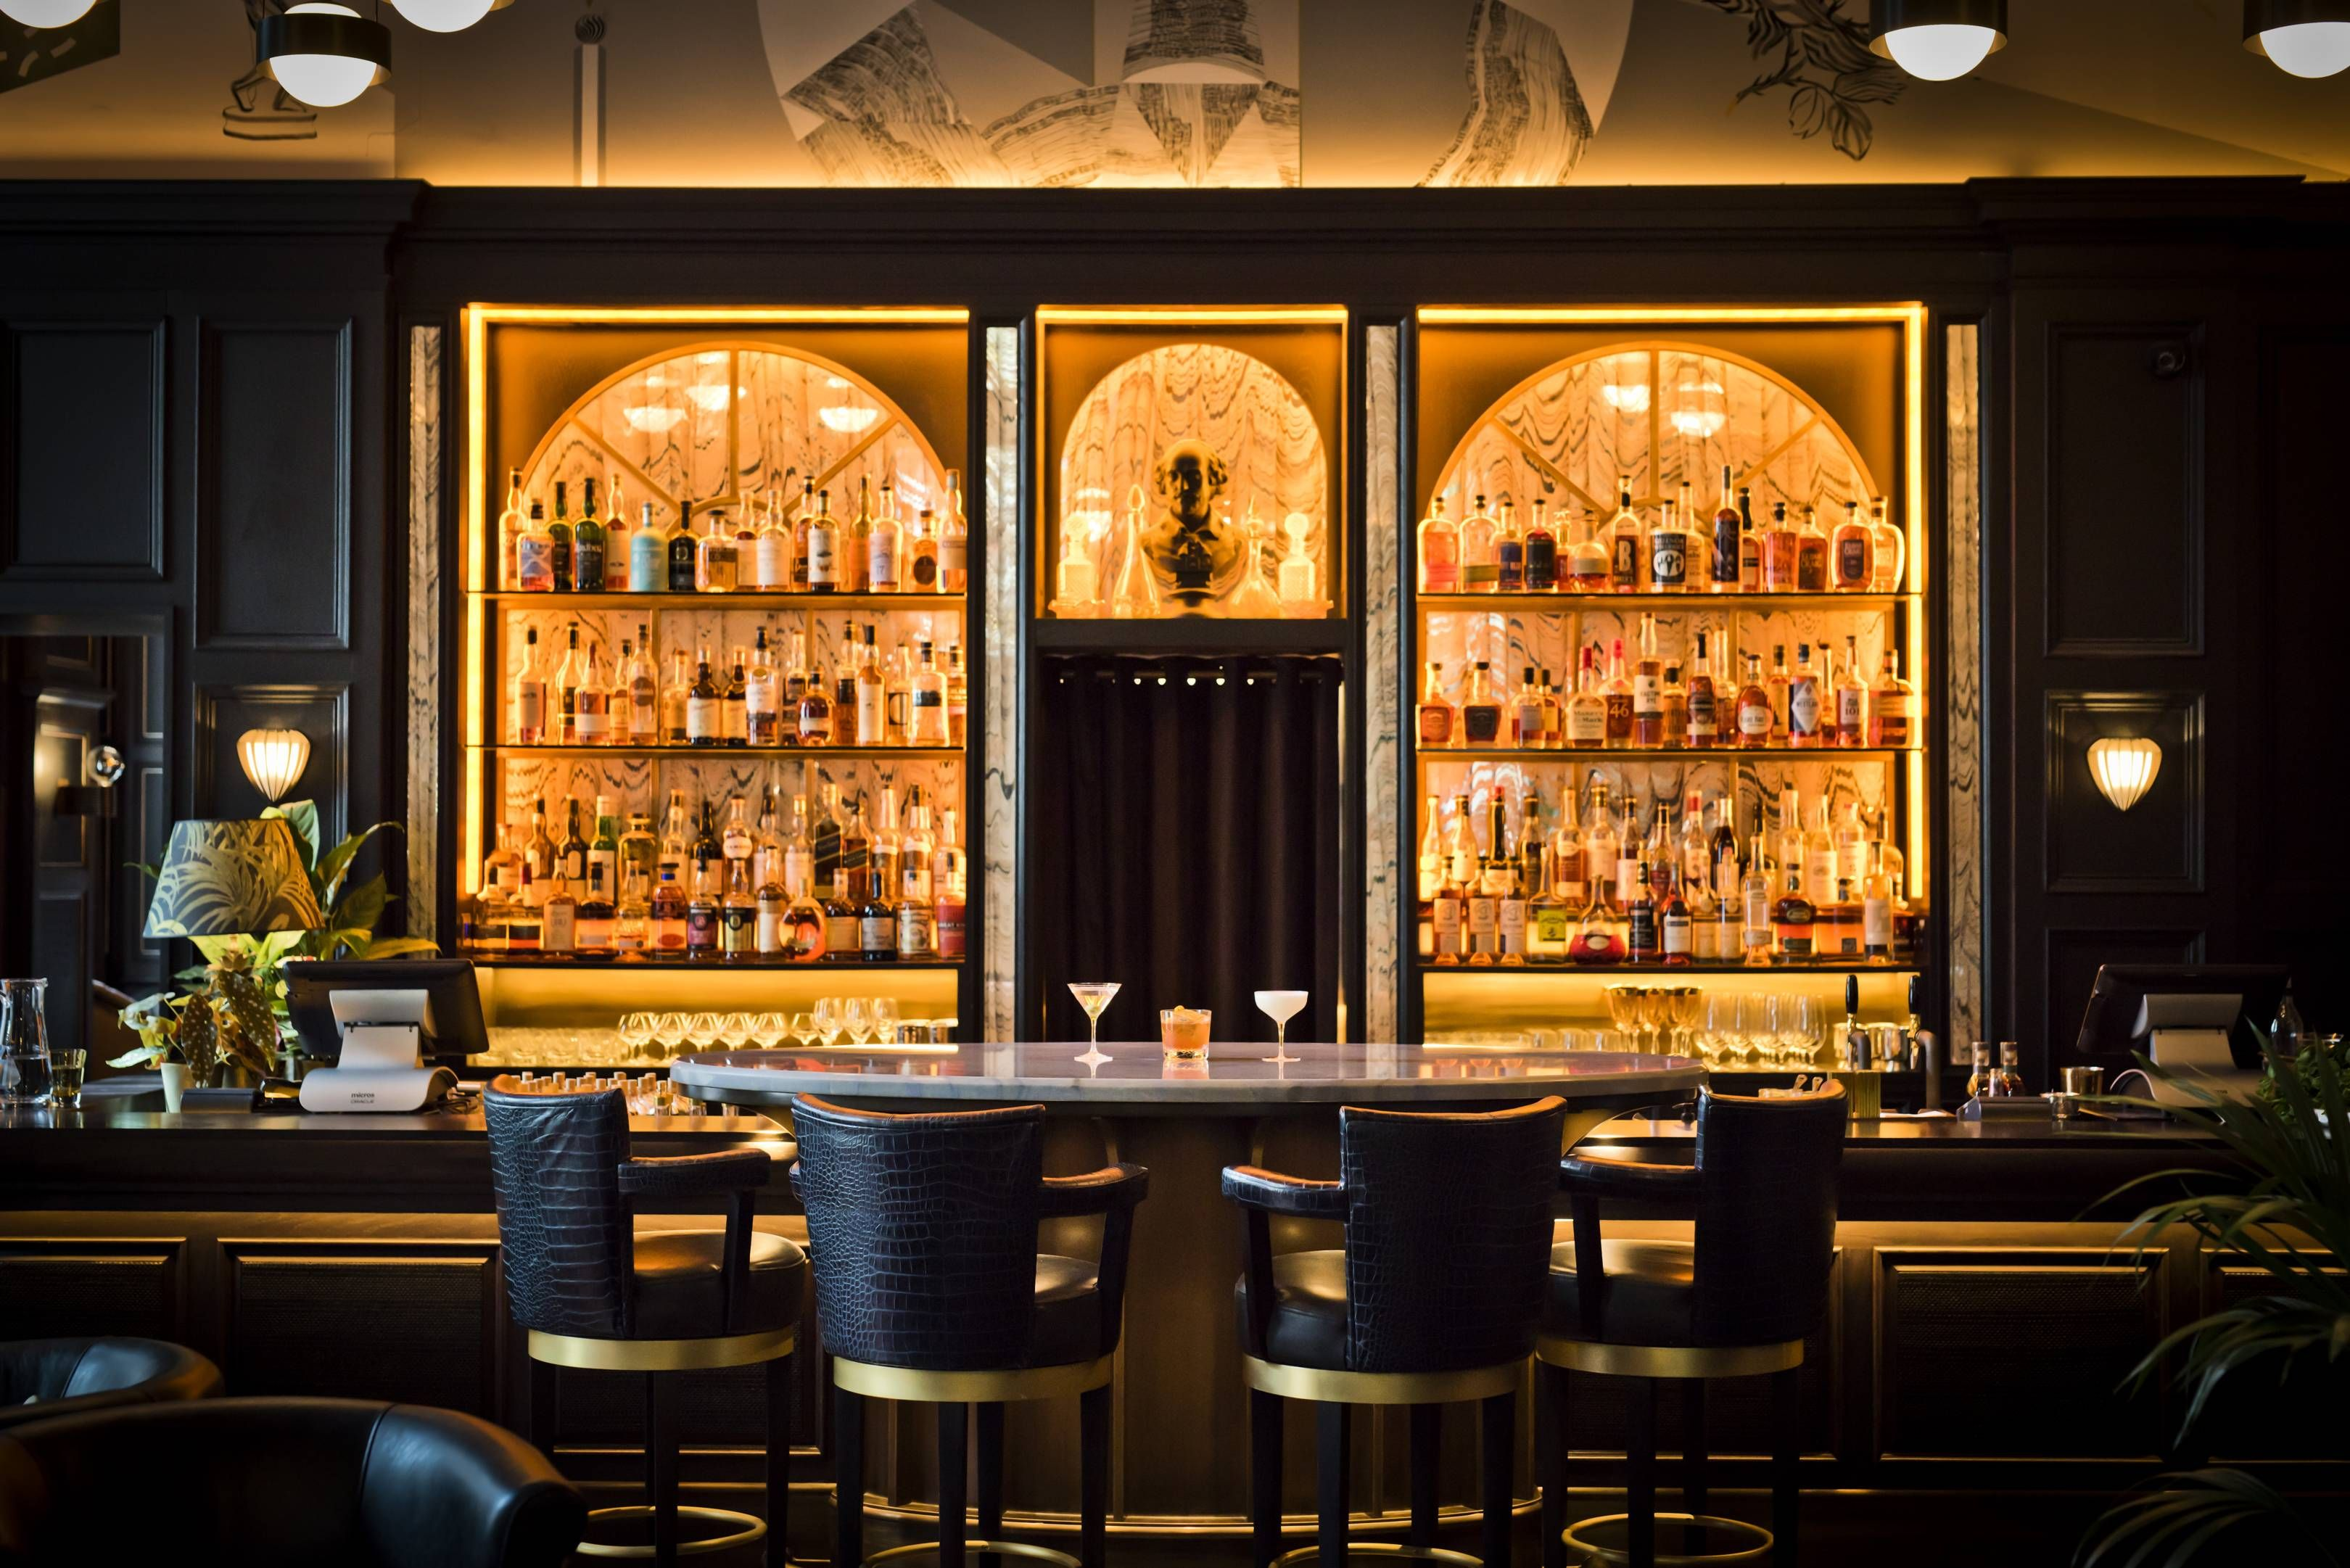 The 50 best bars in London for cocktails | Cool bars, Bar ...